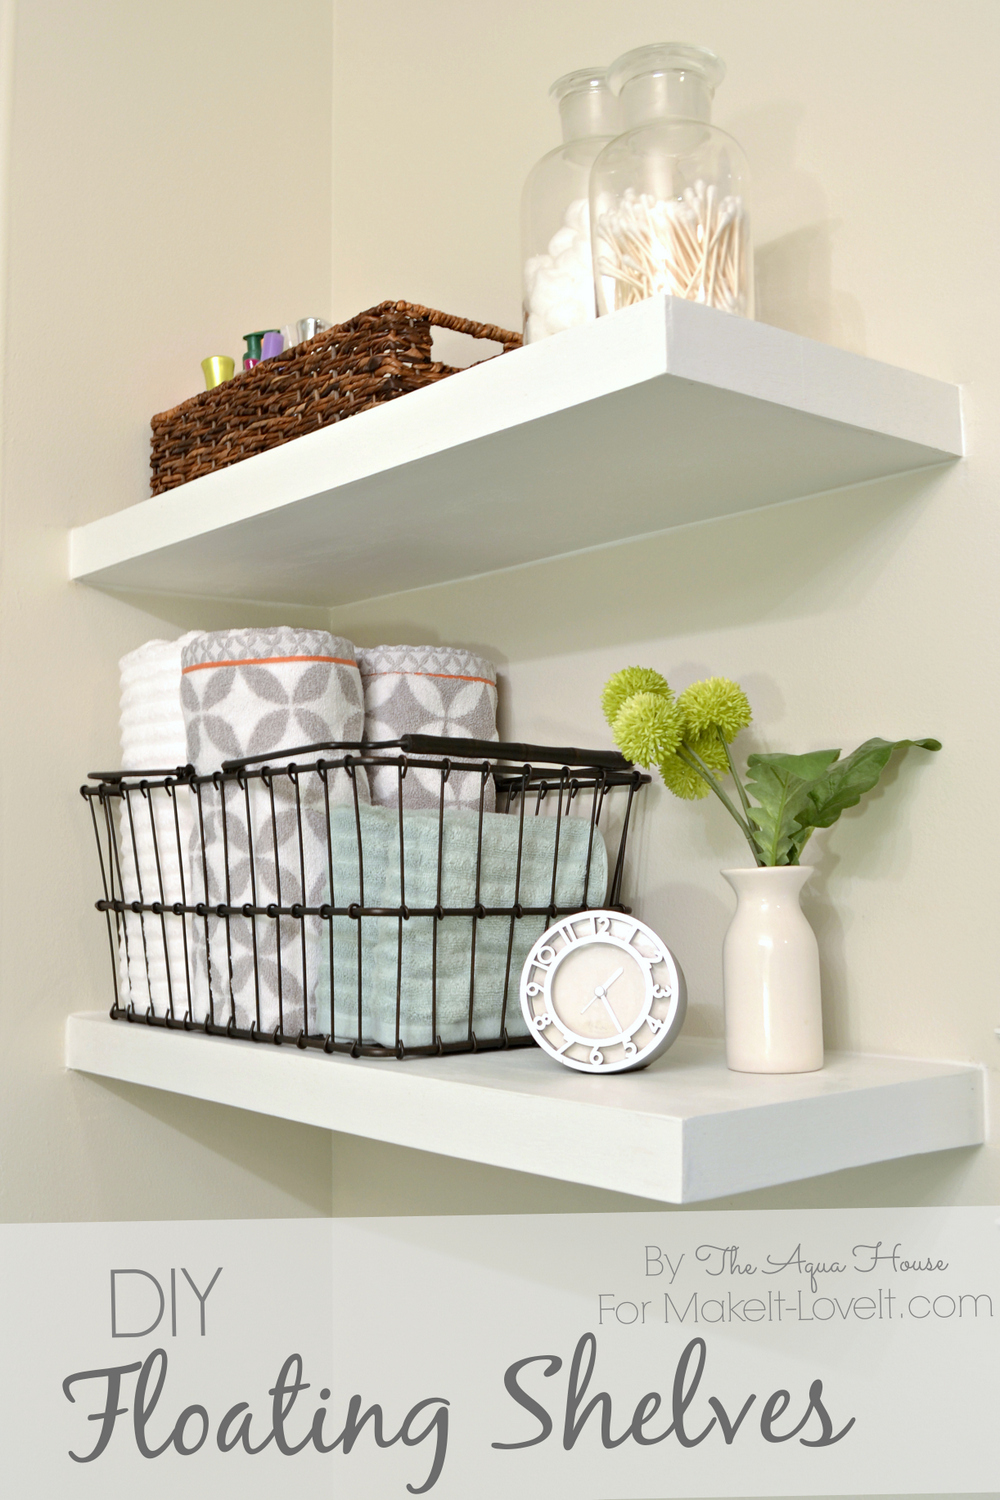 diy floating shelves great storage solution make and love floatings title without screws nice computer desks for home metal wood shelf ikea glass shelving unit wide wire barn wall